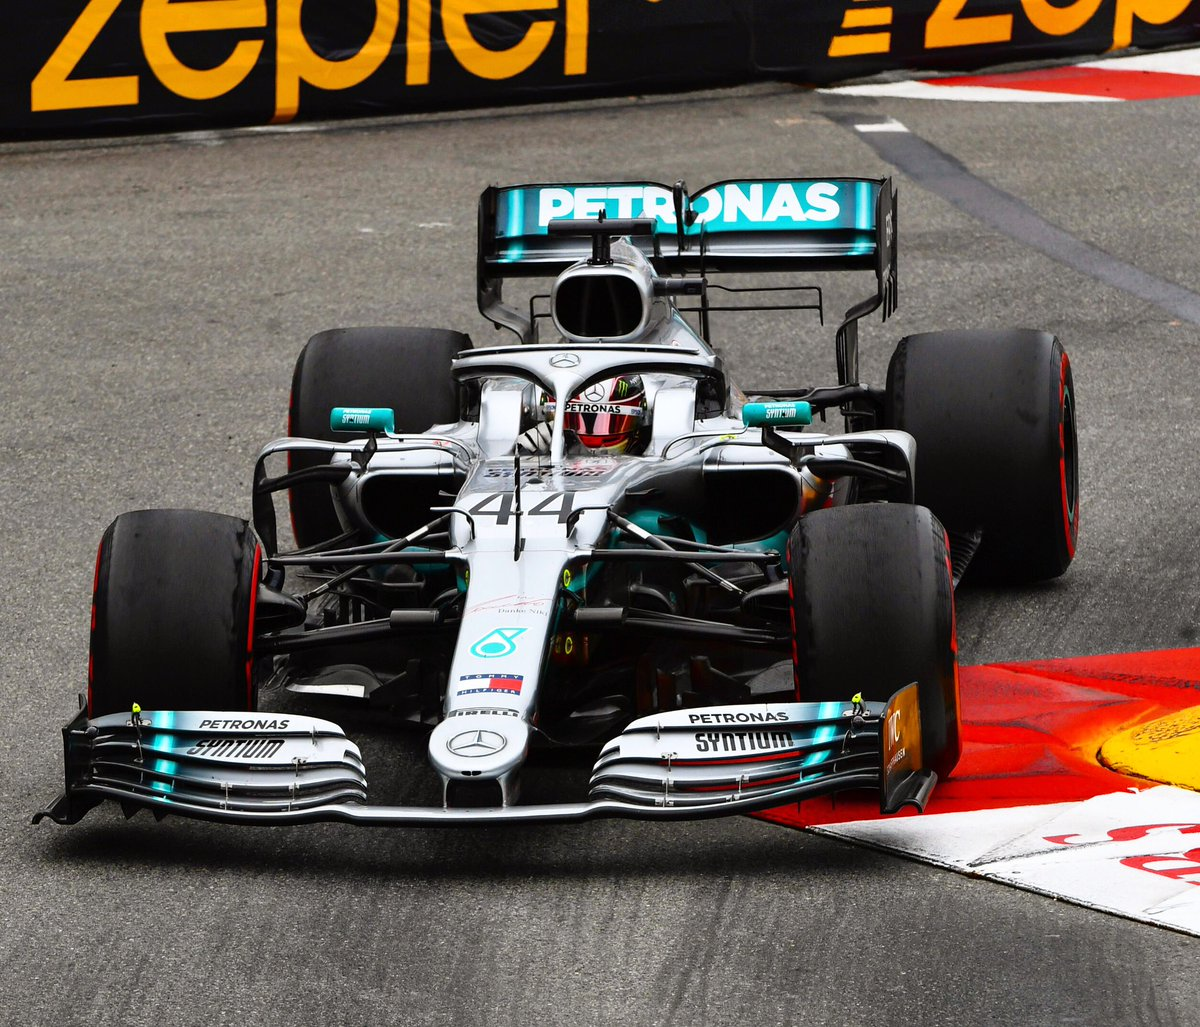 #MonacoGP Thursday = ✅  Lewis clocks a 1:11.118 to top the timesheets around Monte Carlo, Valtteri posts a 1:11.199 to take P2